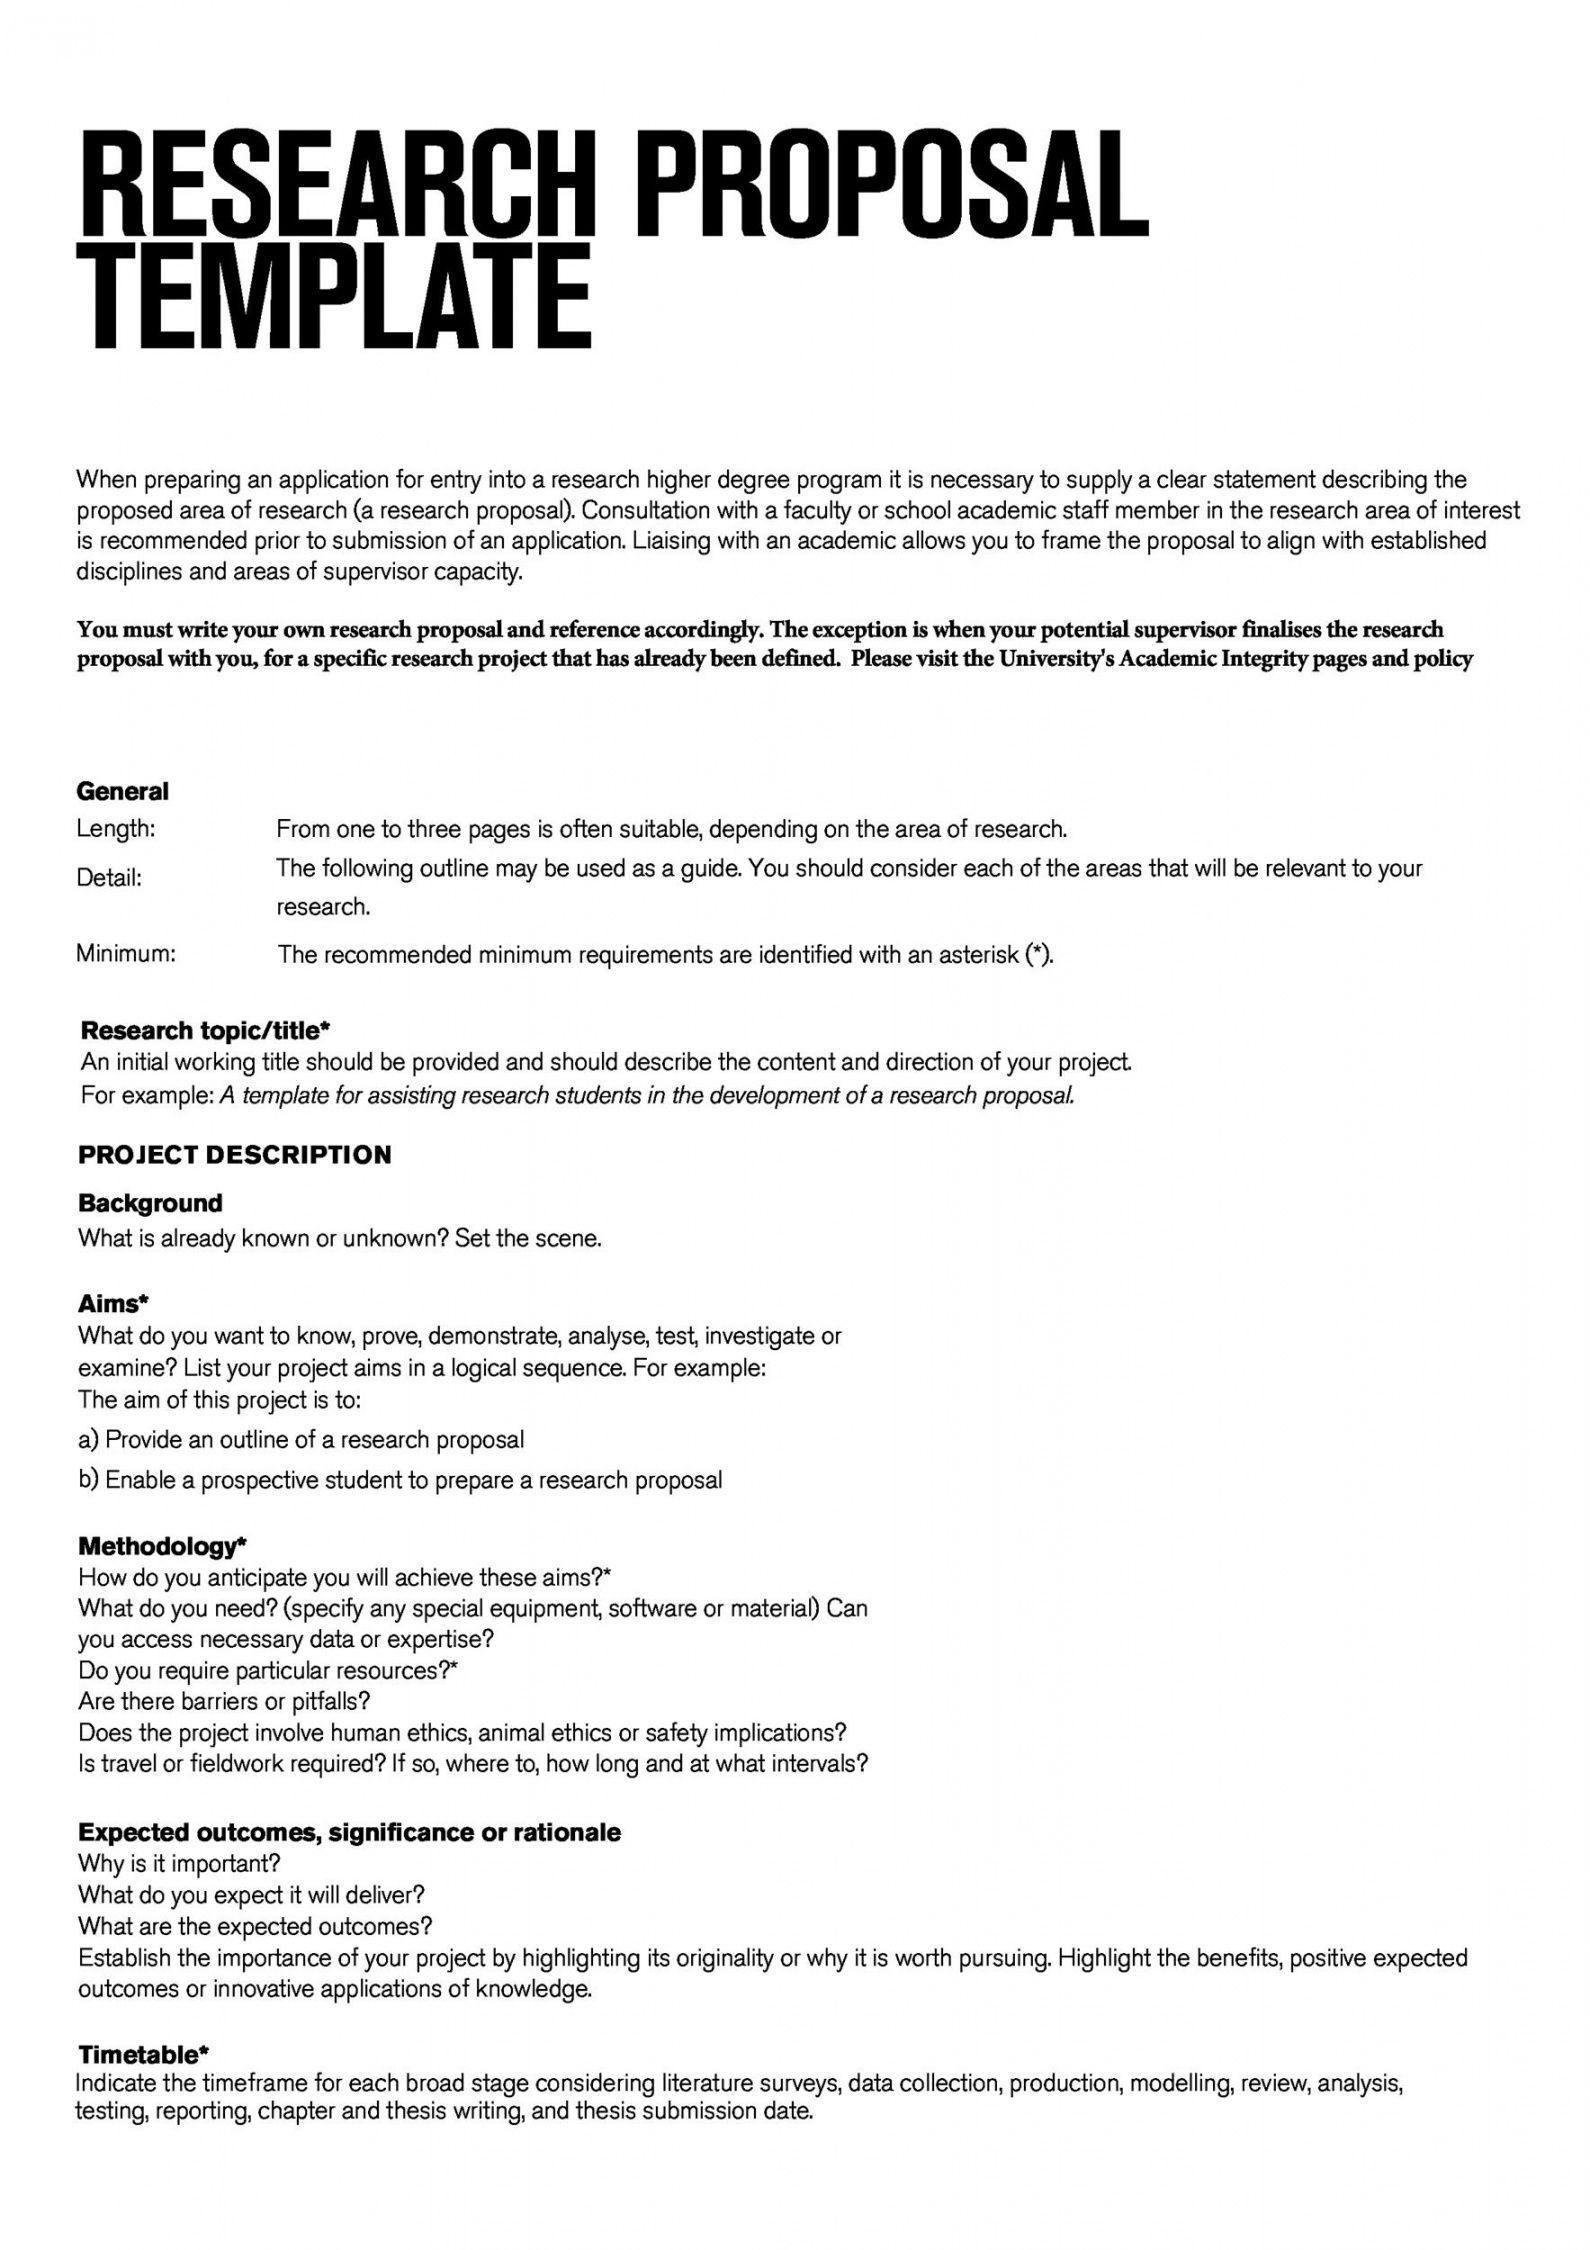 Scientific Project Proposal Template  Research proposal, Research